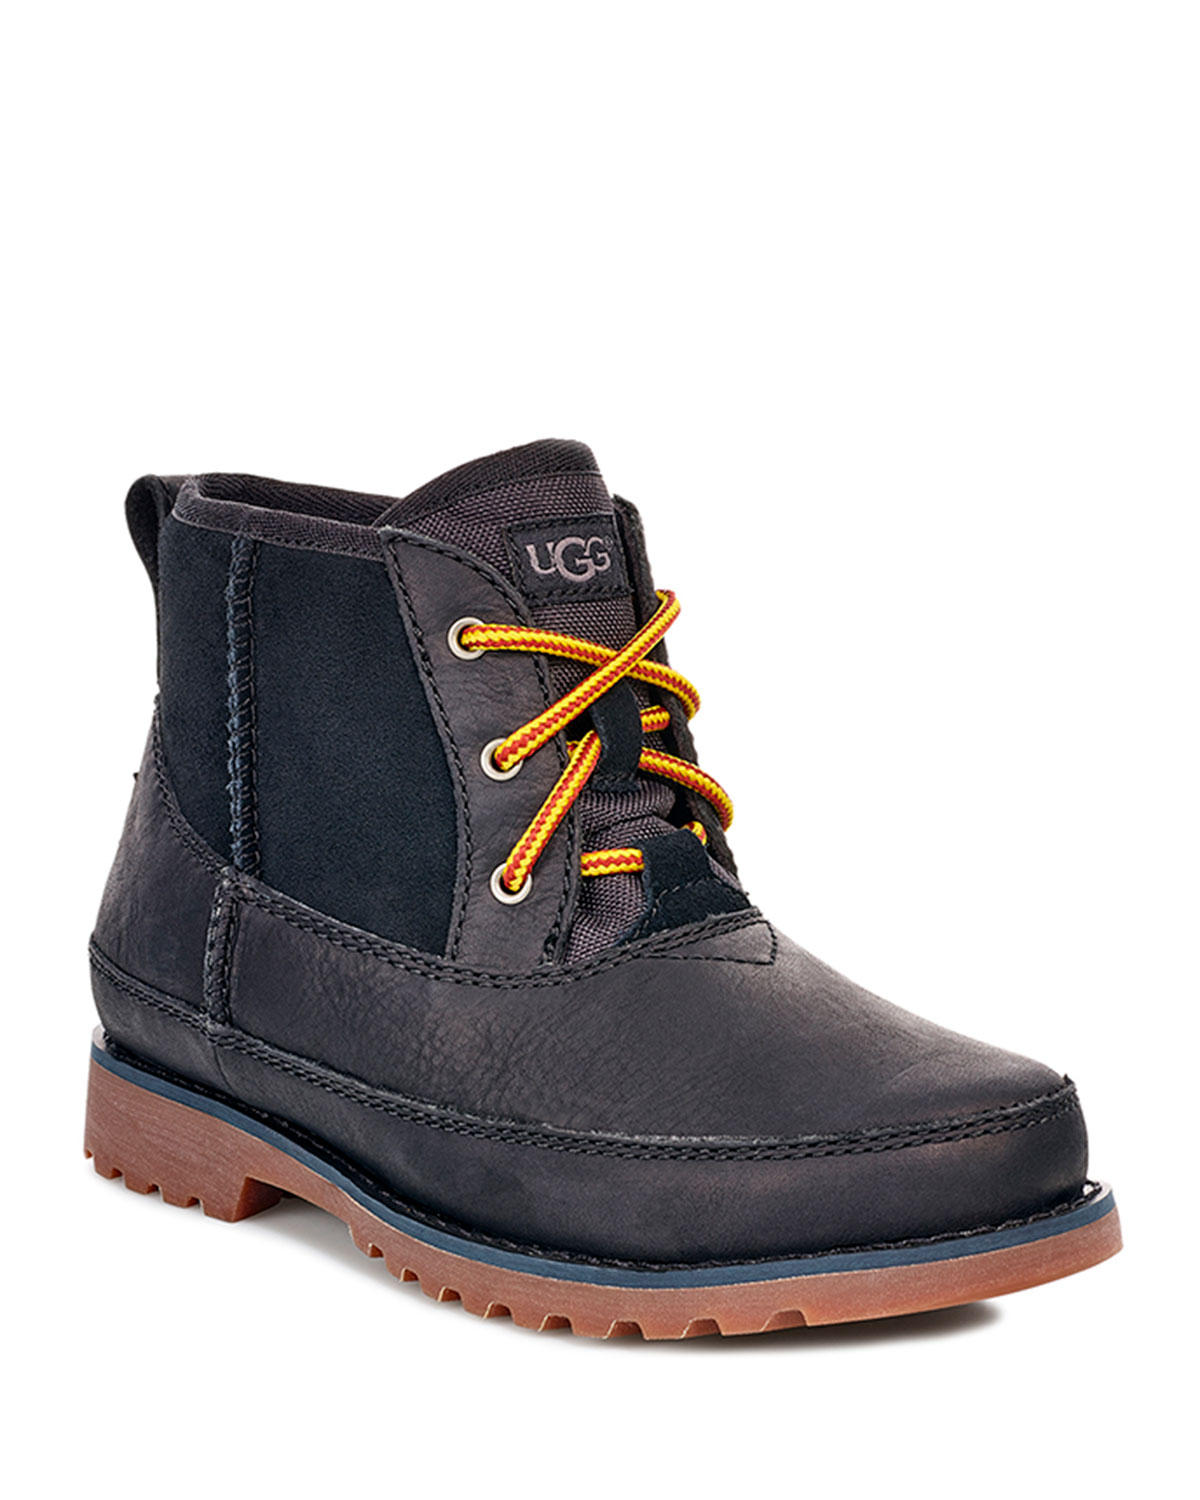 466eacd1c8 UGG Bradley Suede   Leather Waterproof Boots